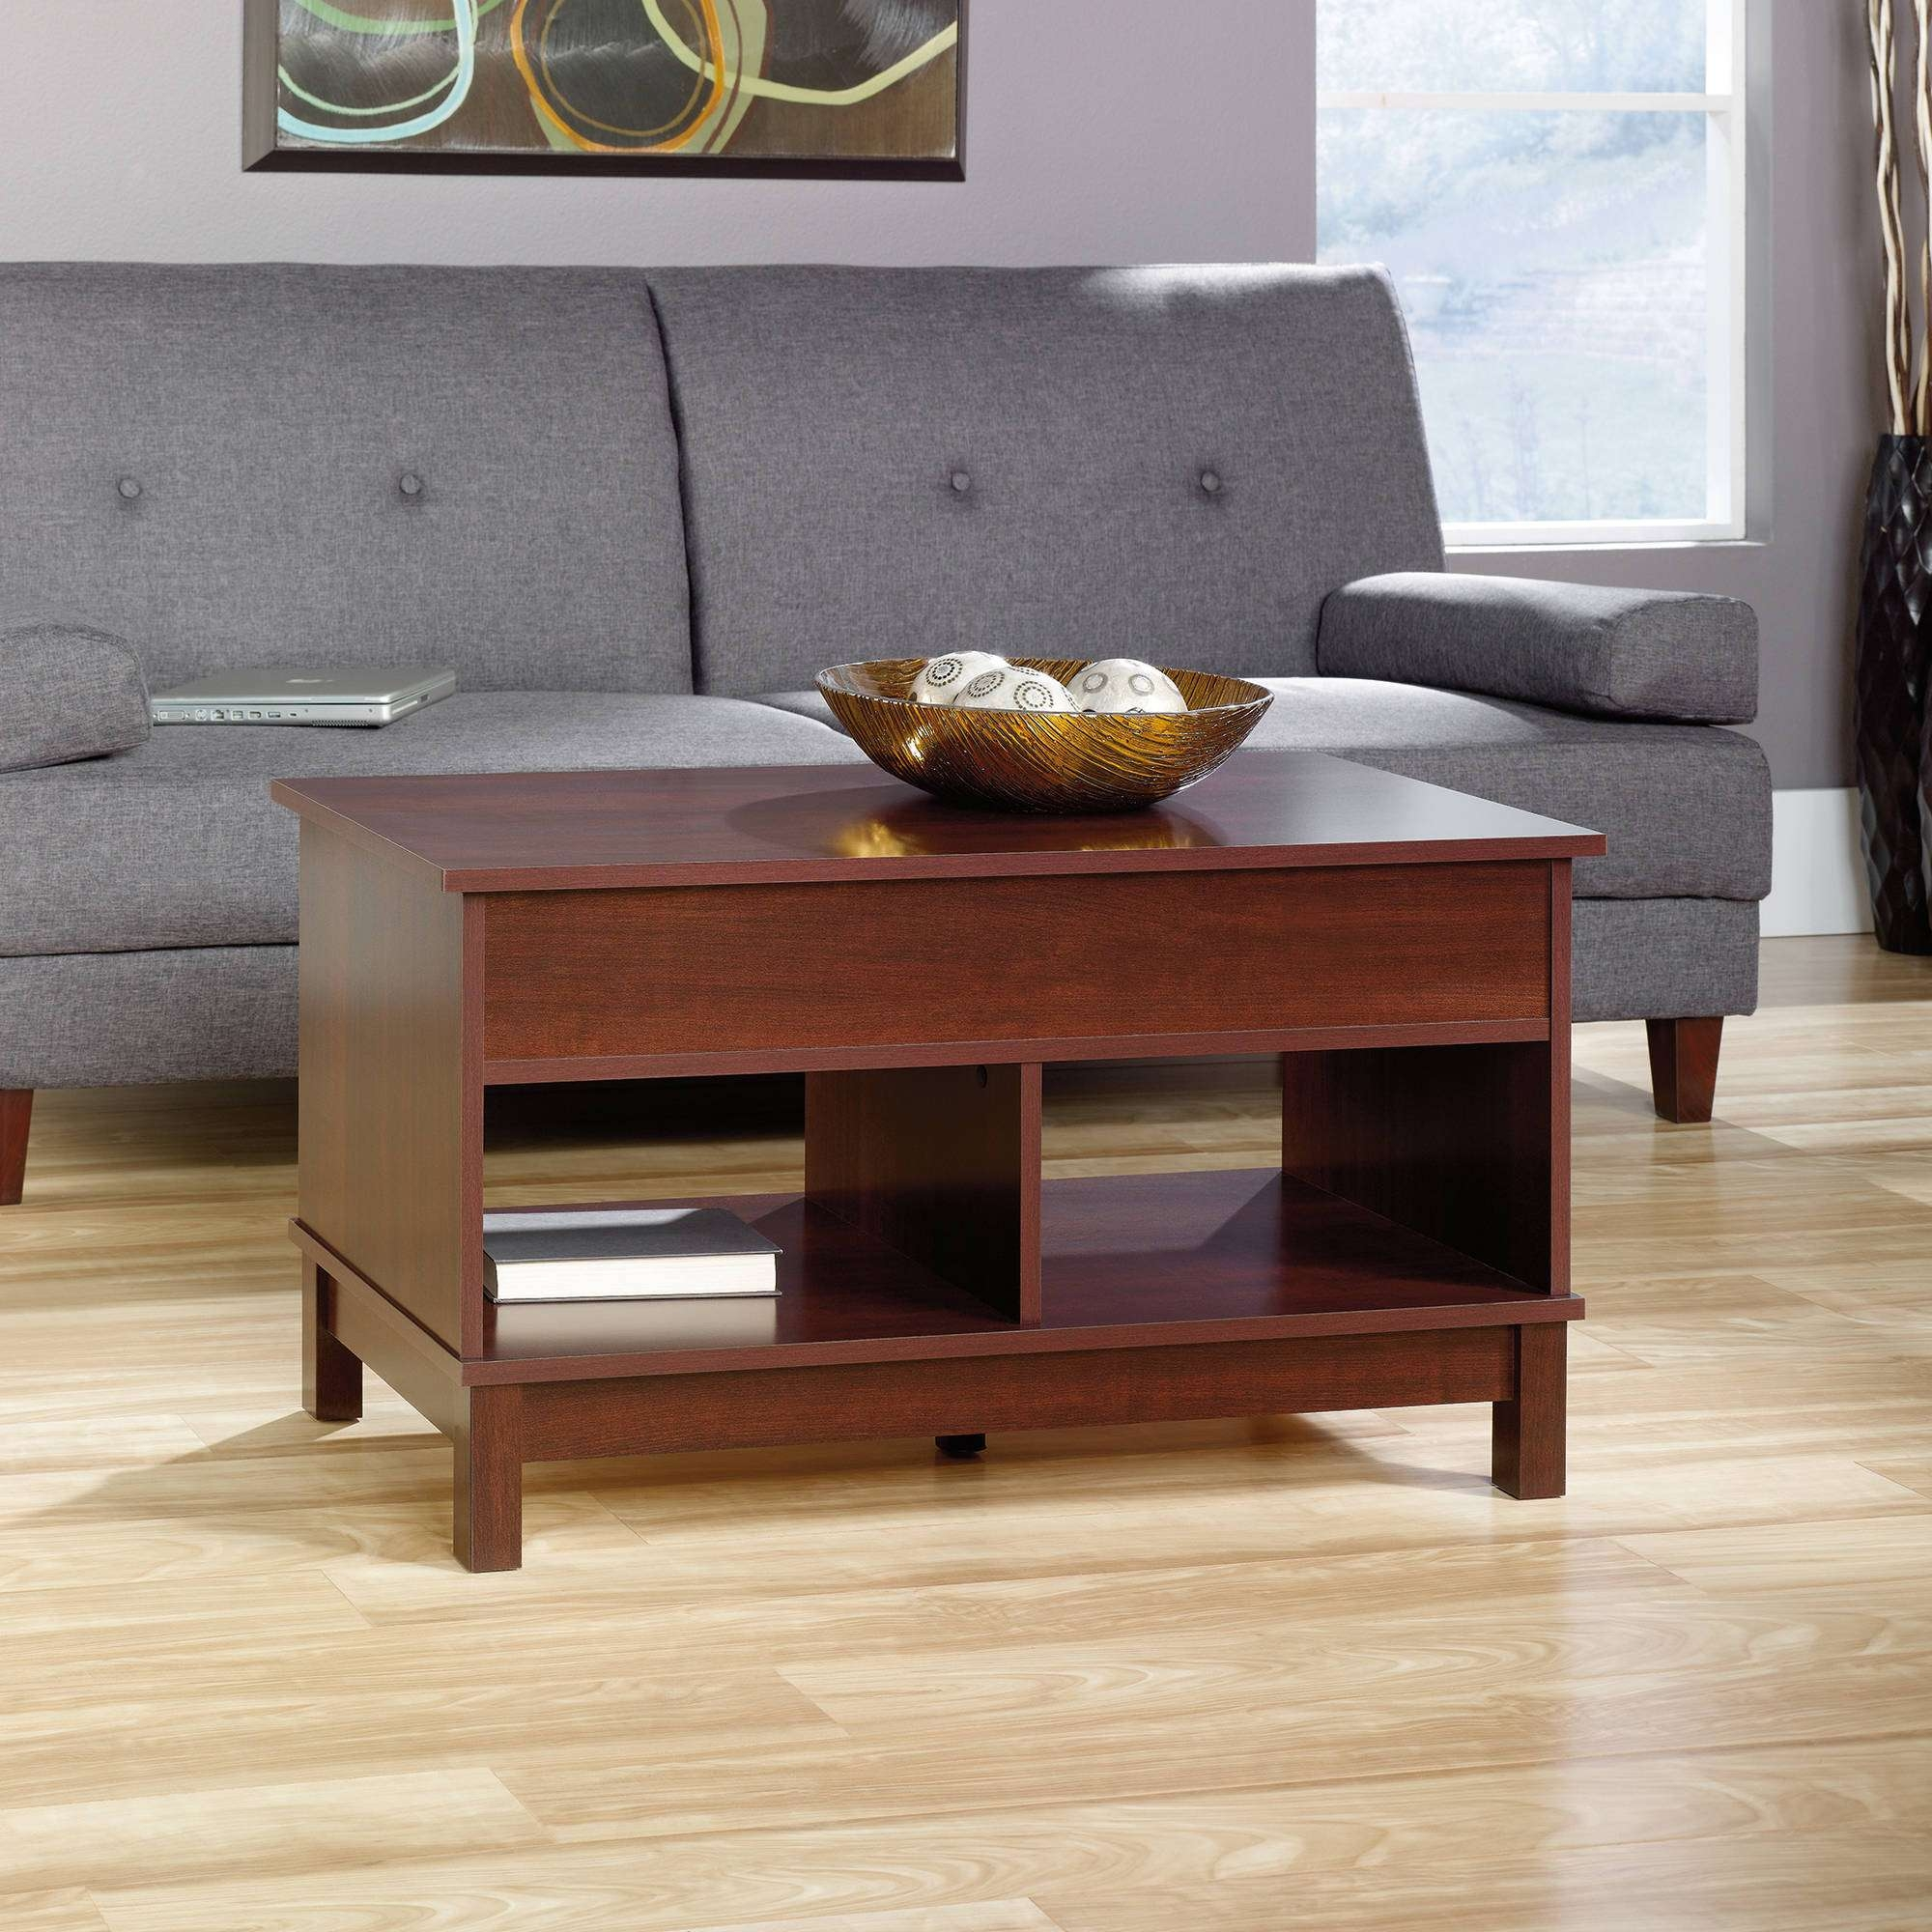 Coffee Tables : Ana White Diy Lift Top Coffee Table Rustic X Style Regarding Popular Elevating Coffee Tables (View 17 of 20)